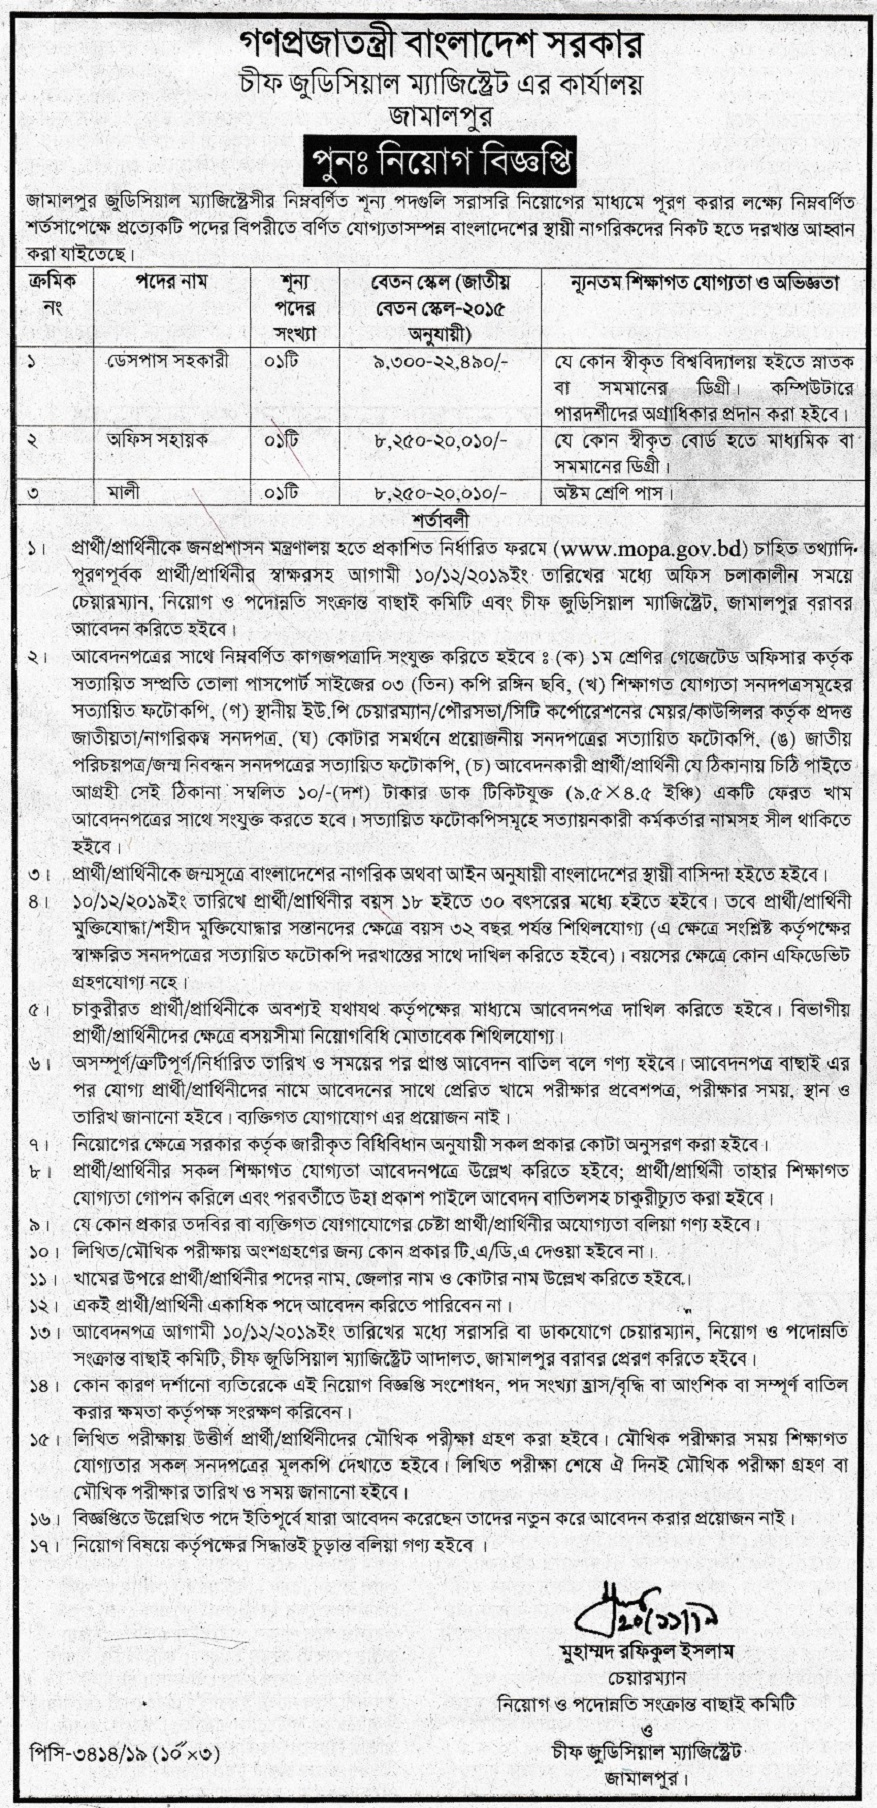 Chief Judicial Magistrate Job Circular 2019